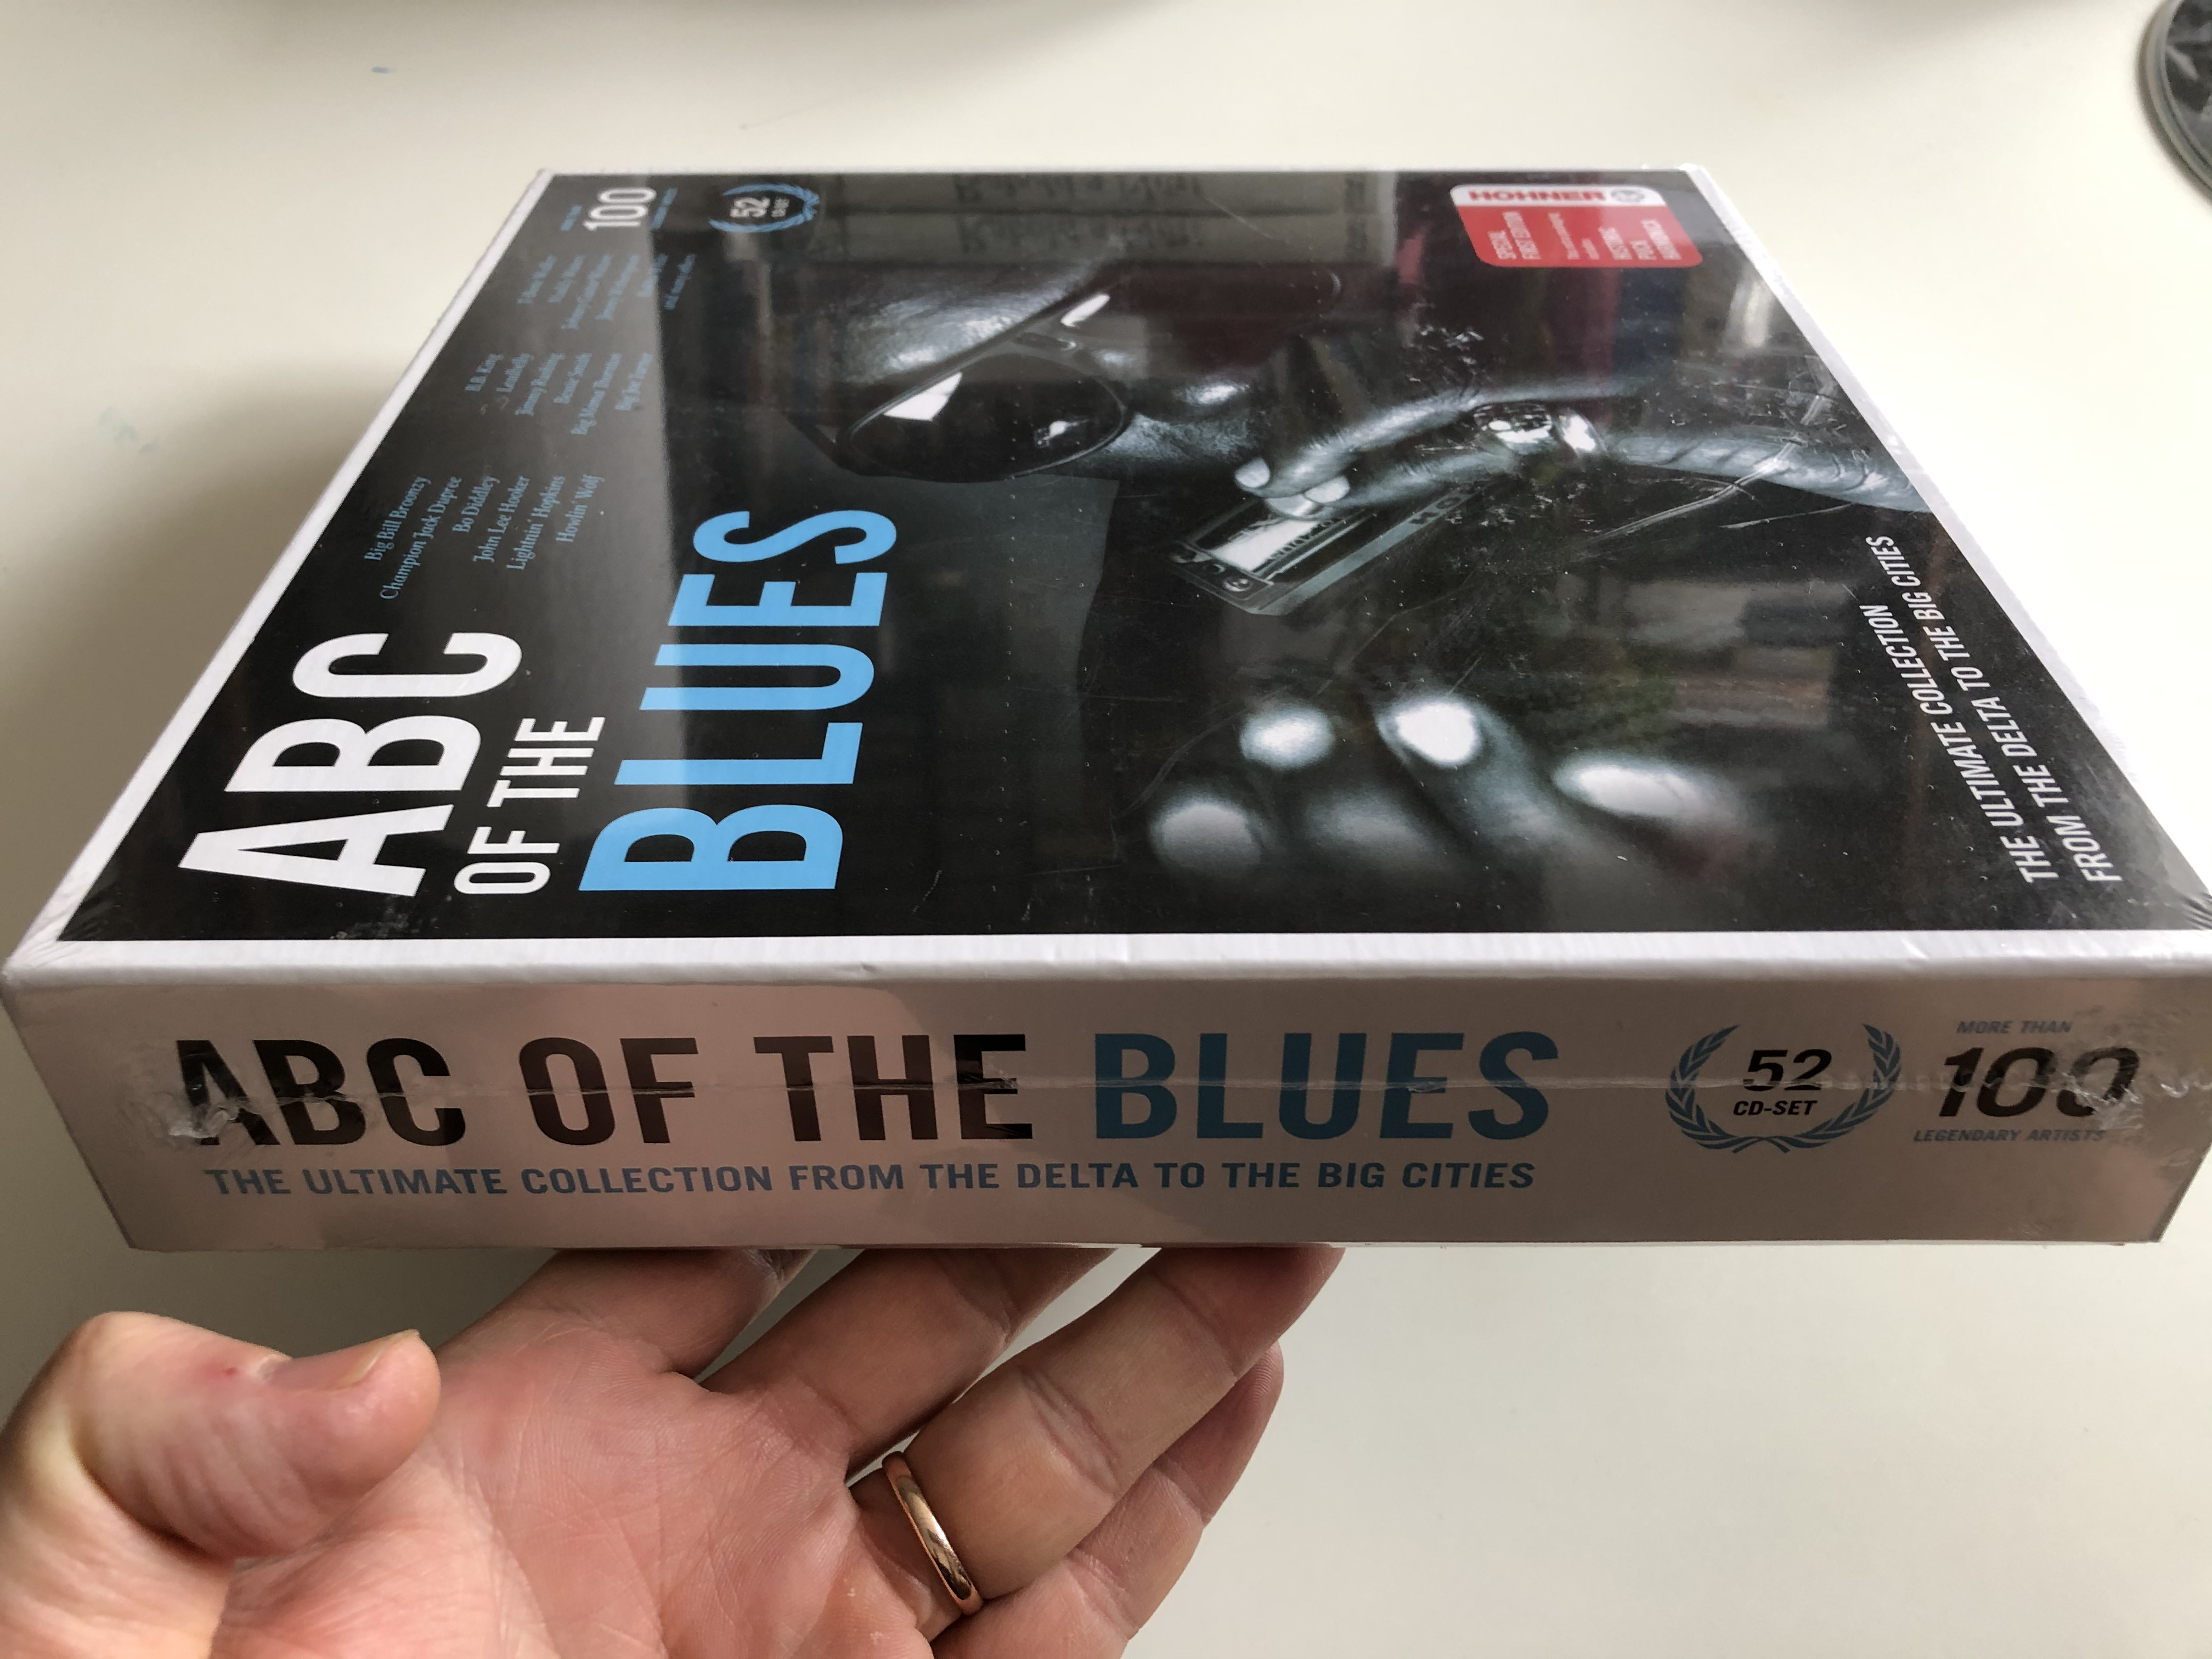 abc-of-the-blues-the-ultimate-collection-from-the-delta-to-the-big-cities-big-bill-broonzy-bo-diddley-howlin-wolf-leadbelly-bessie-smith-big-joe-turner-muddy-waters-bukka-white-docum-3-.jpg